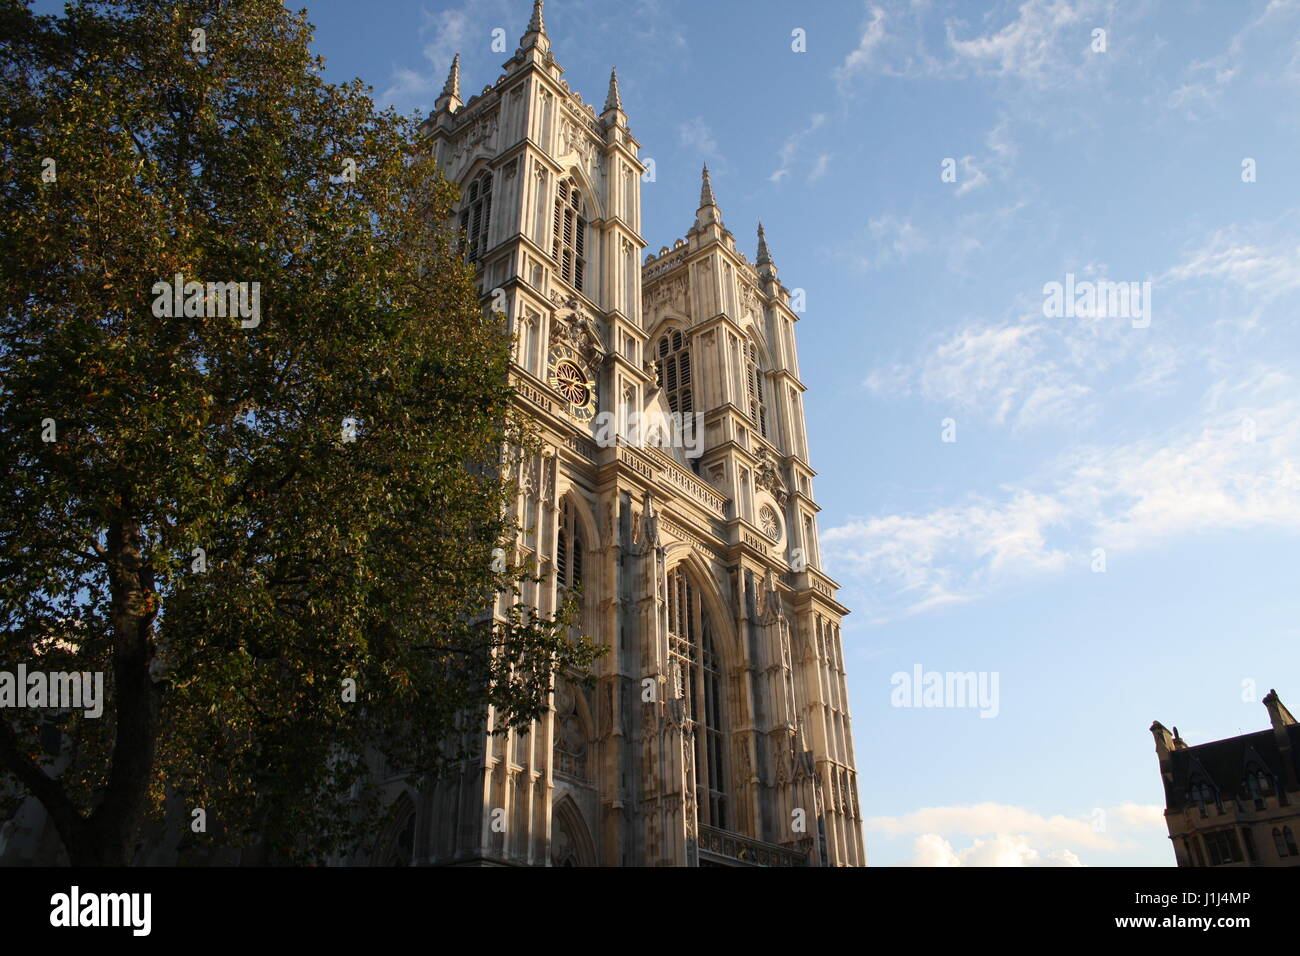 The Westminster Abbey in London, U.K. on a sunny day Stock Photo